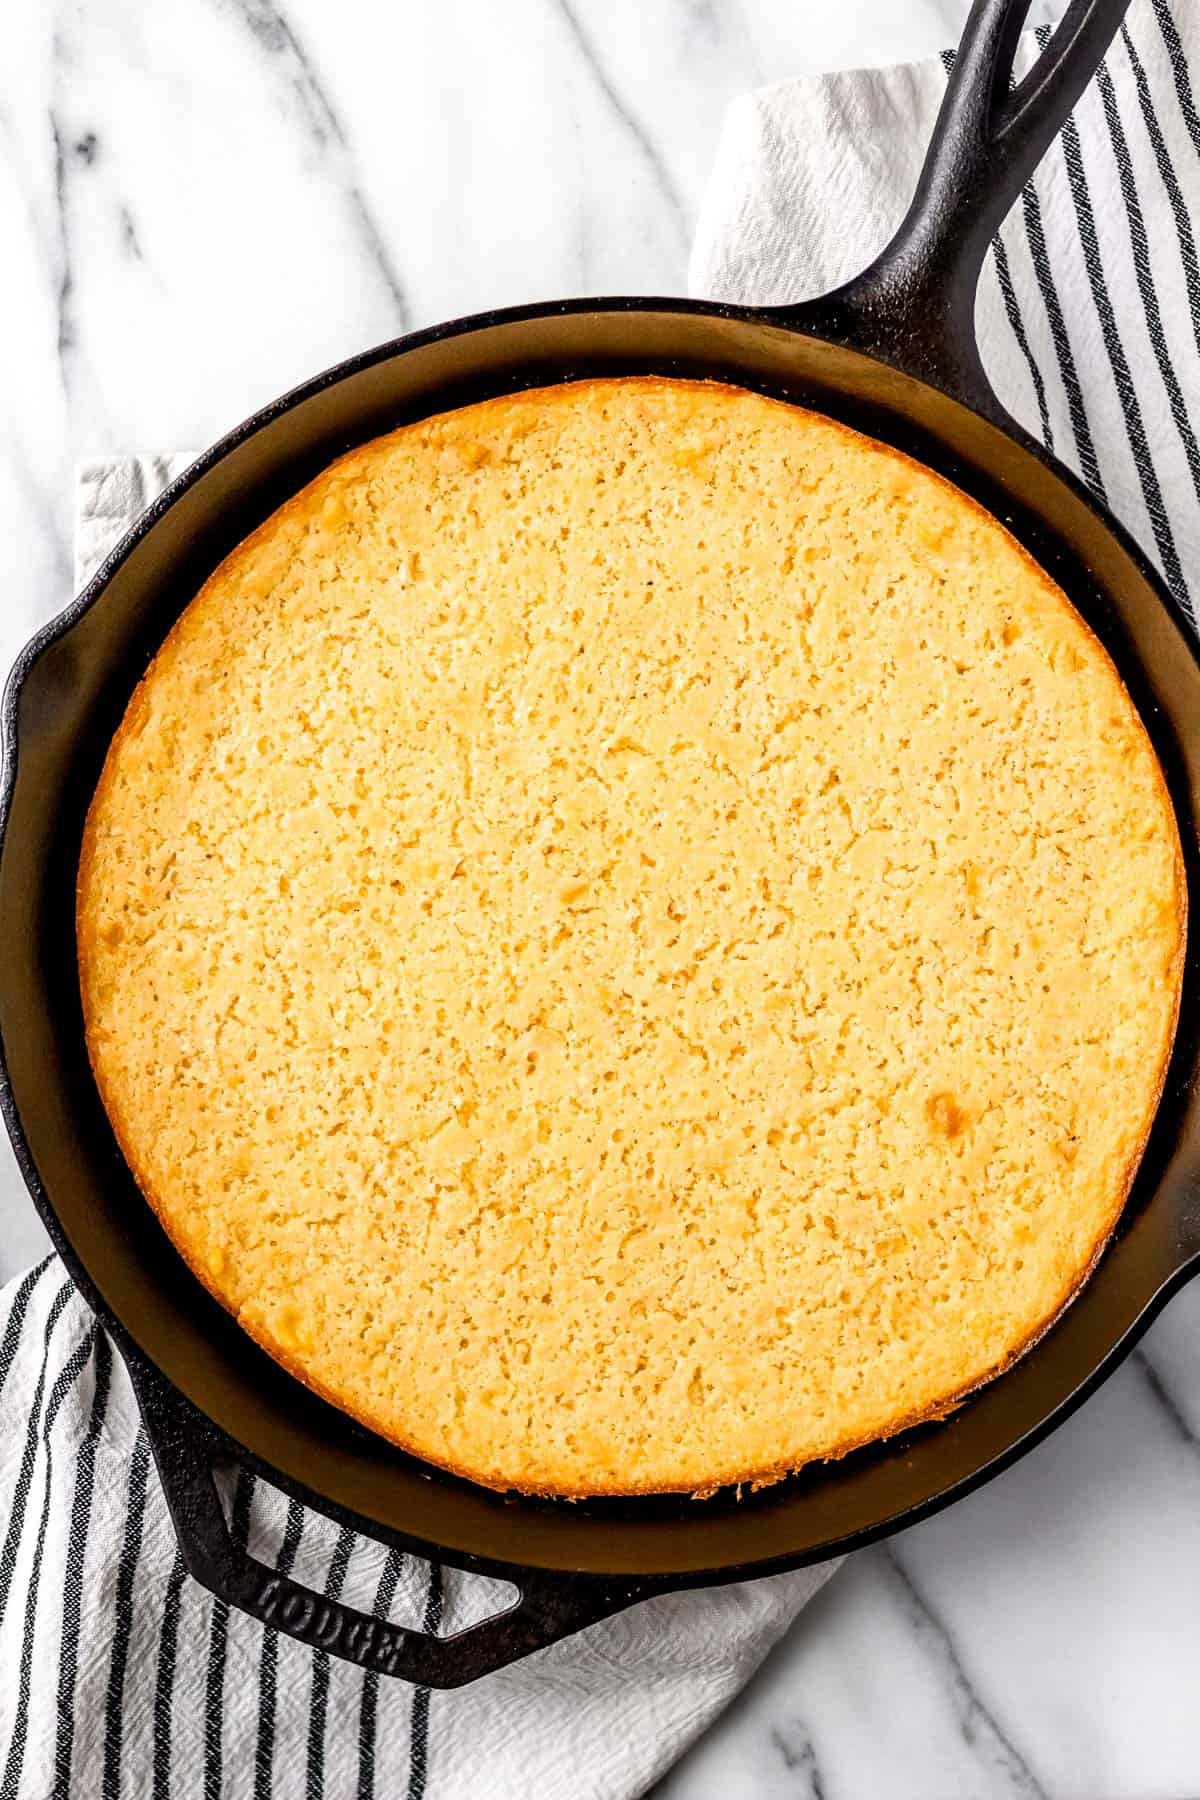 Corn souffle in a cast iron skillet over a cream and black towel on a marble background